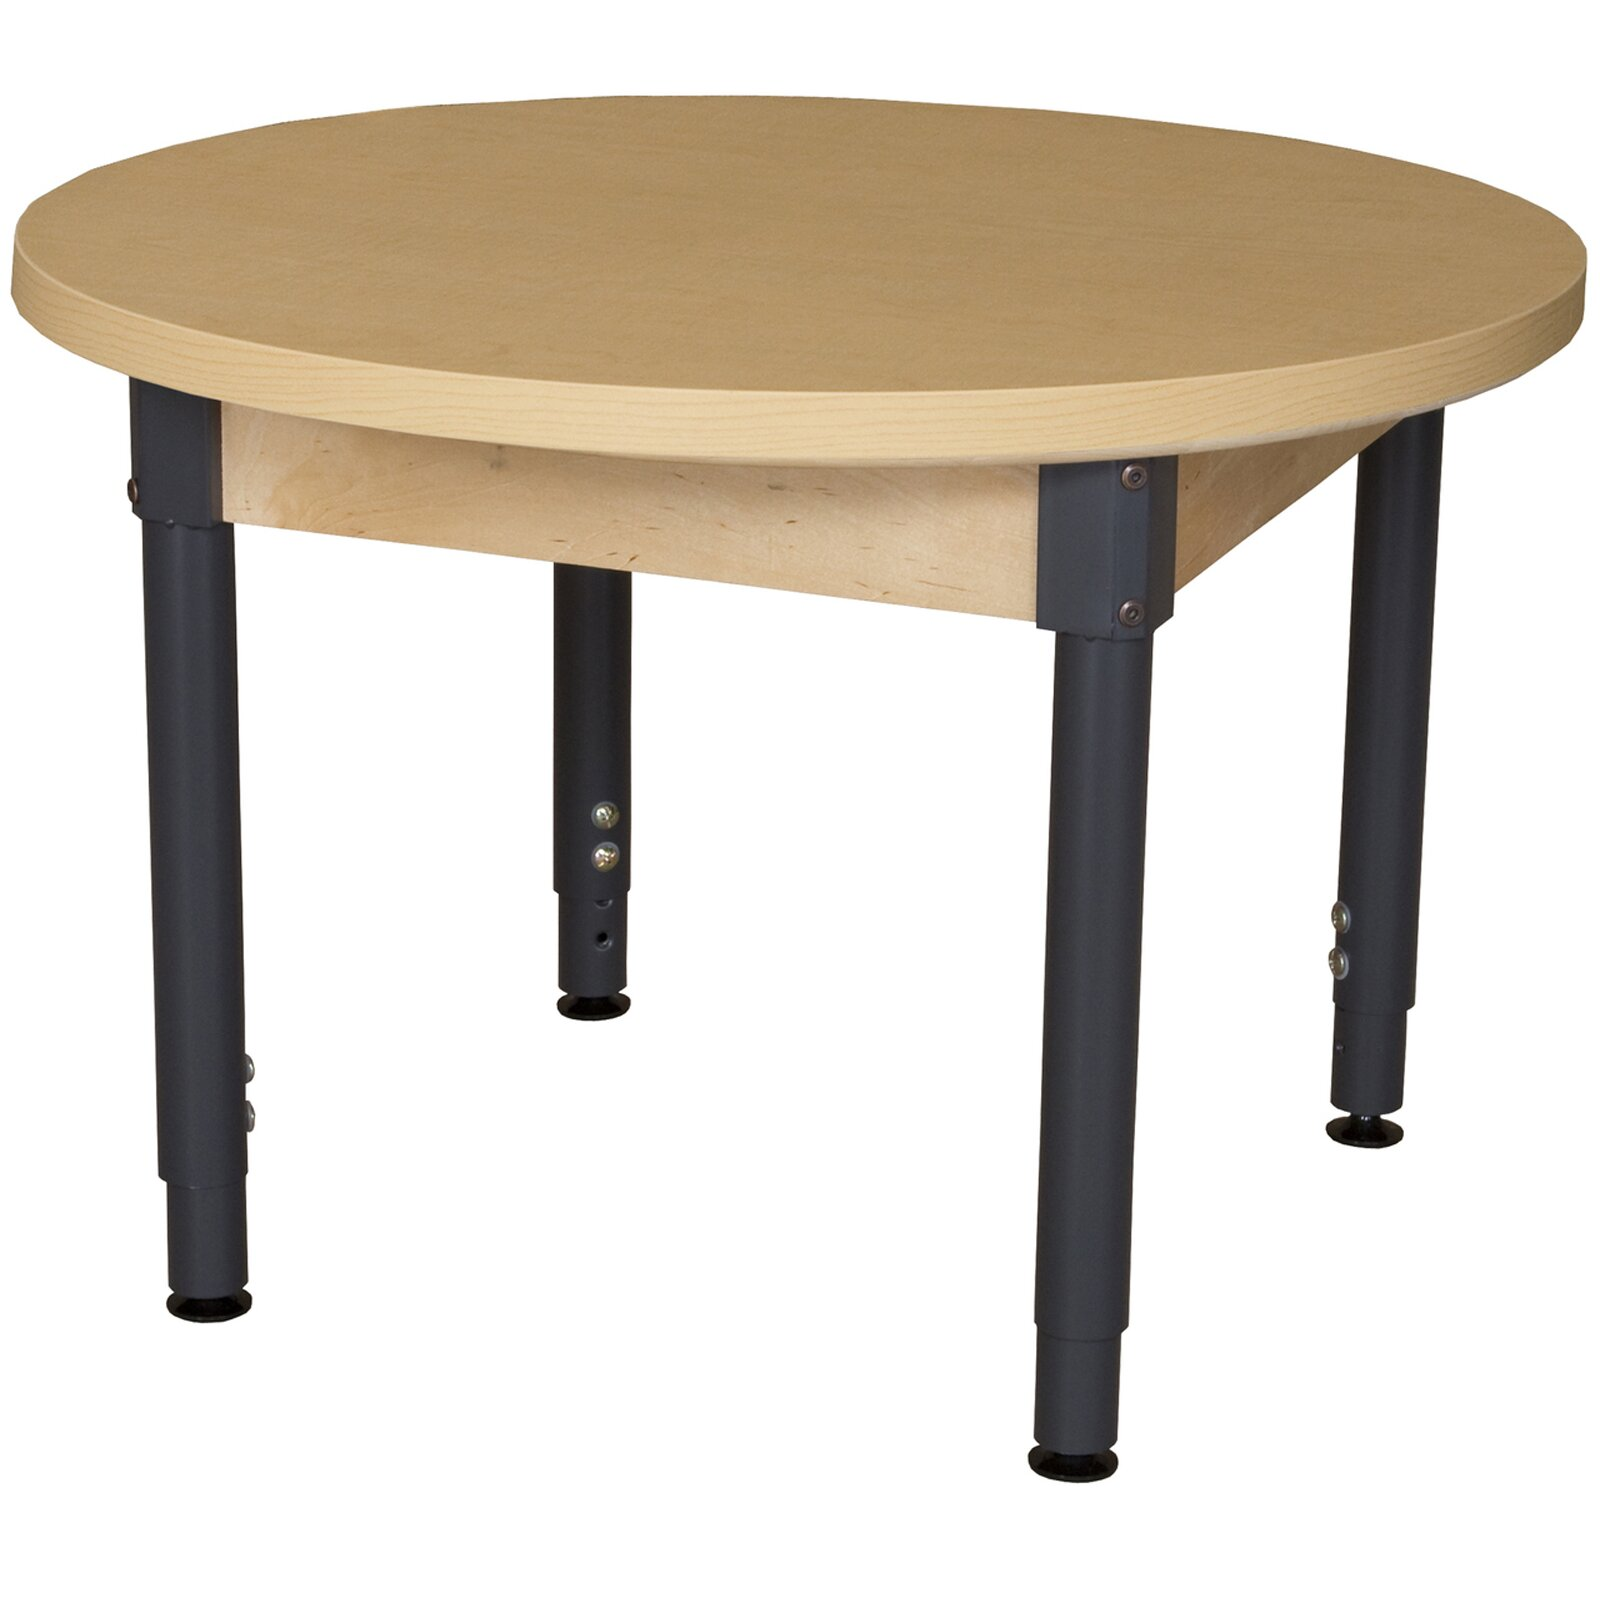 wood designs round high pressure laminate table. Black Bedroom Furniture Sets. Home Design Ideas